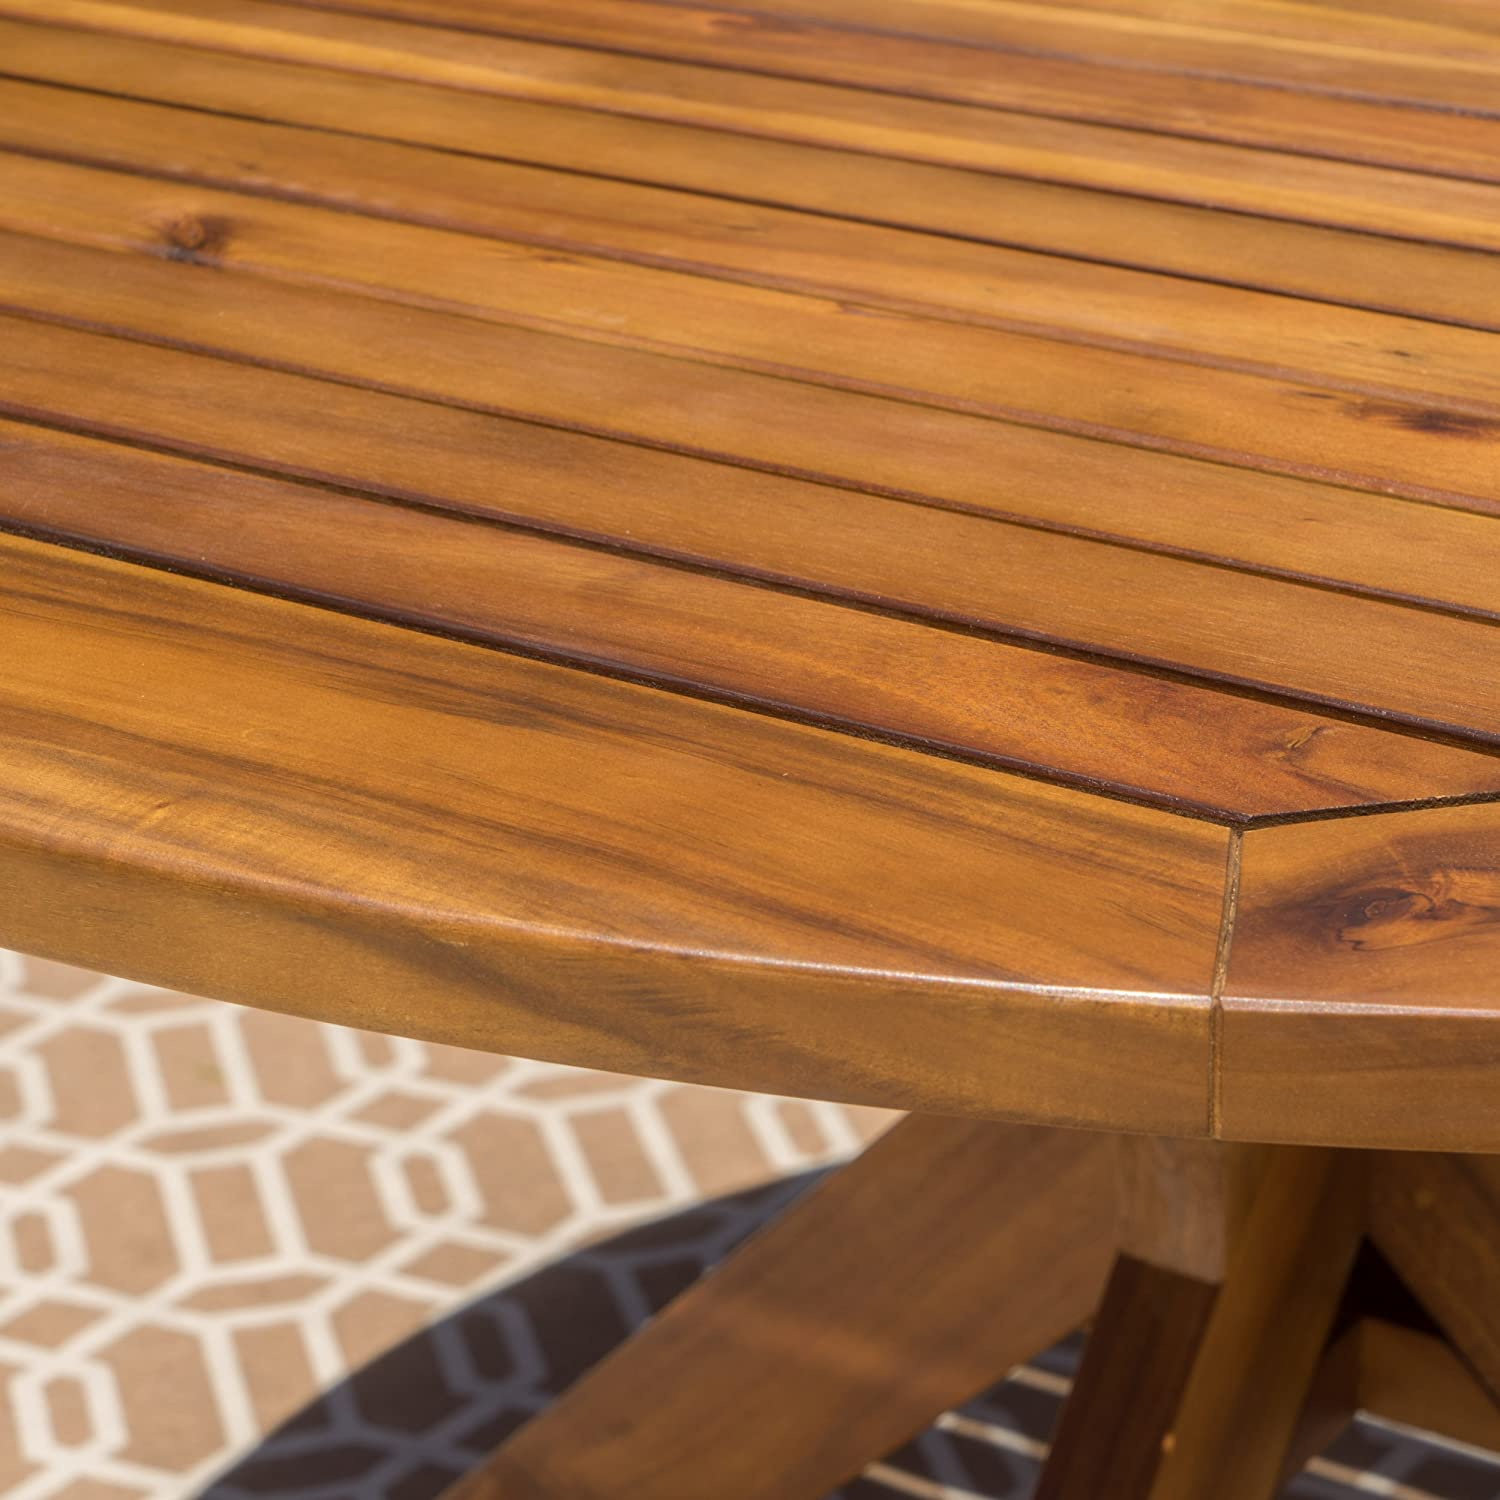 Stanford Outdoor Acacia Wood Dining Table Round with Teak Finish